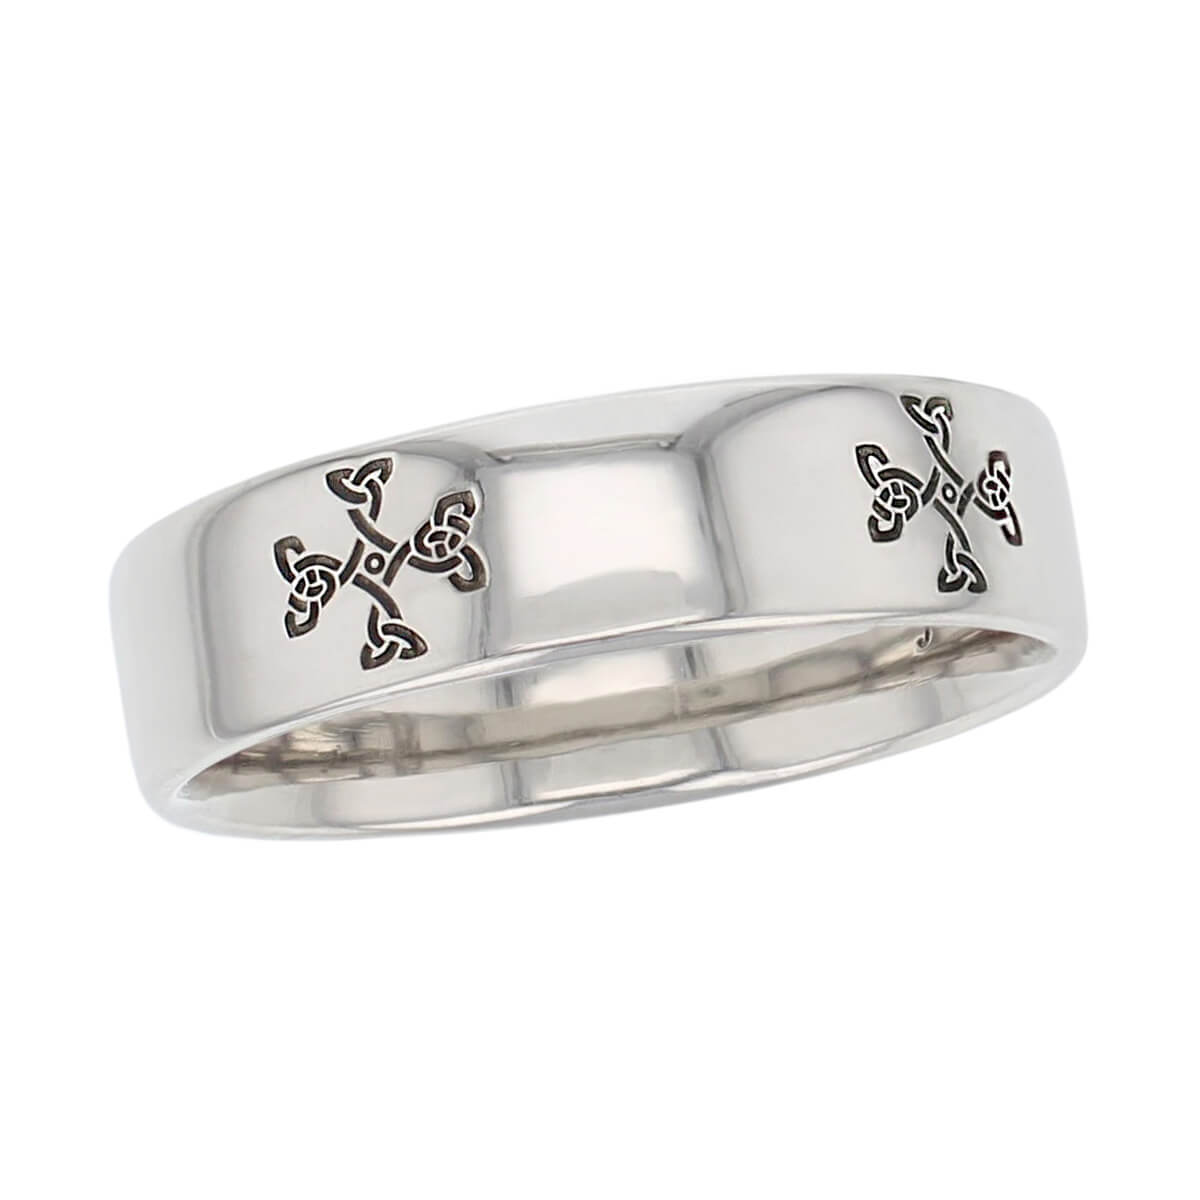 mura cross wedding ring pattern, men's, gents, Irish, celtic knot pattern, St. Mura, Fahan.